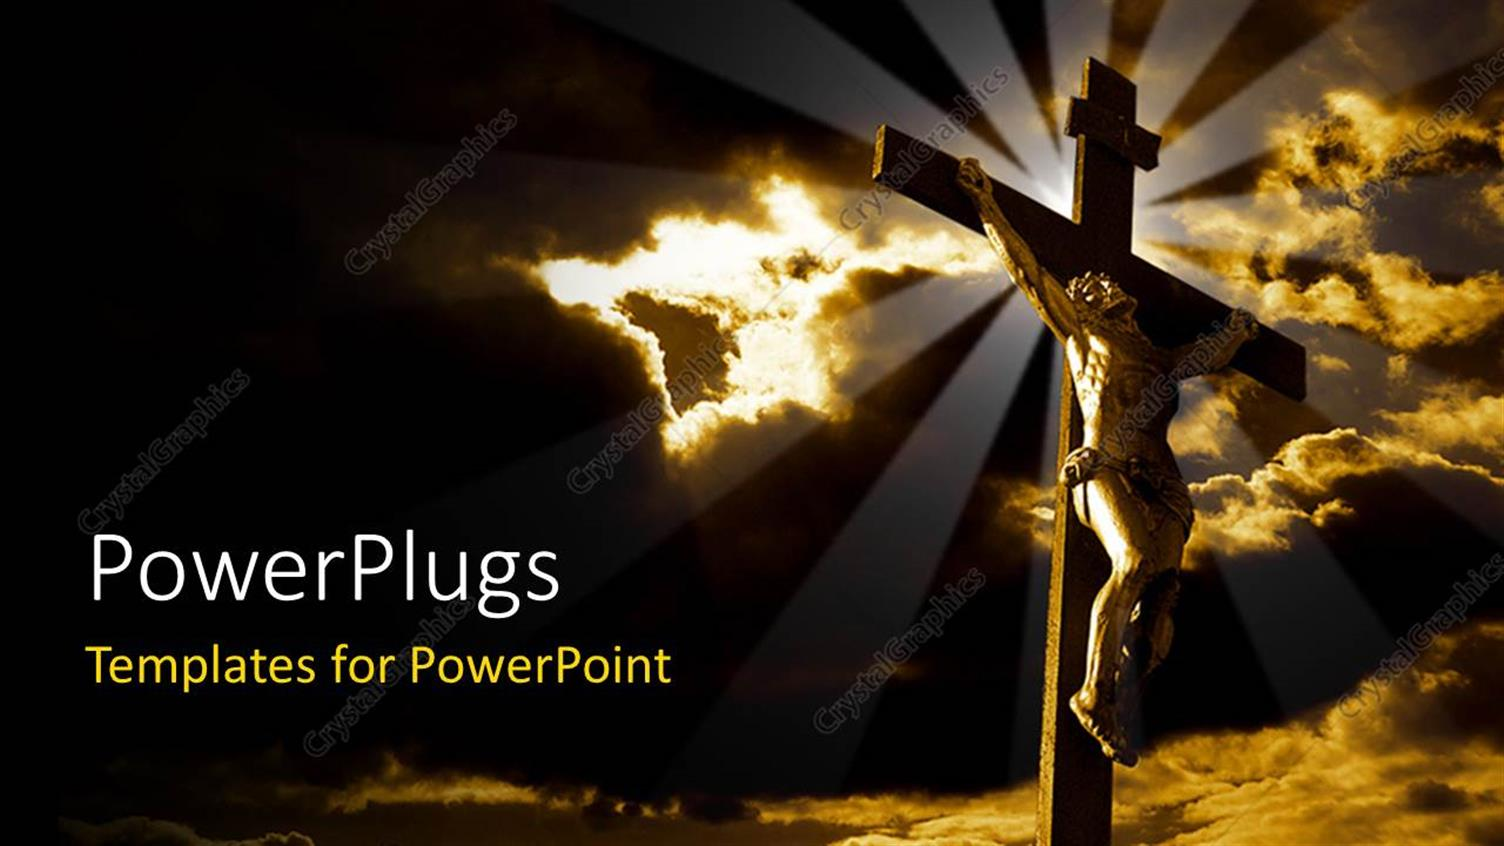 PowerPoint Template Displaying the Crucifixion of Jesus with Clouds in the Background